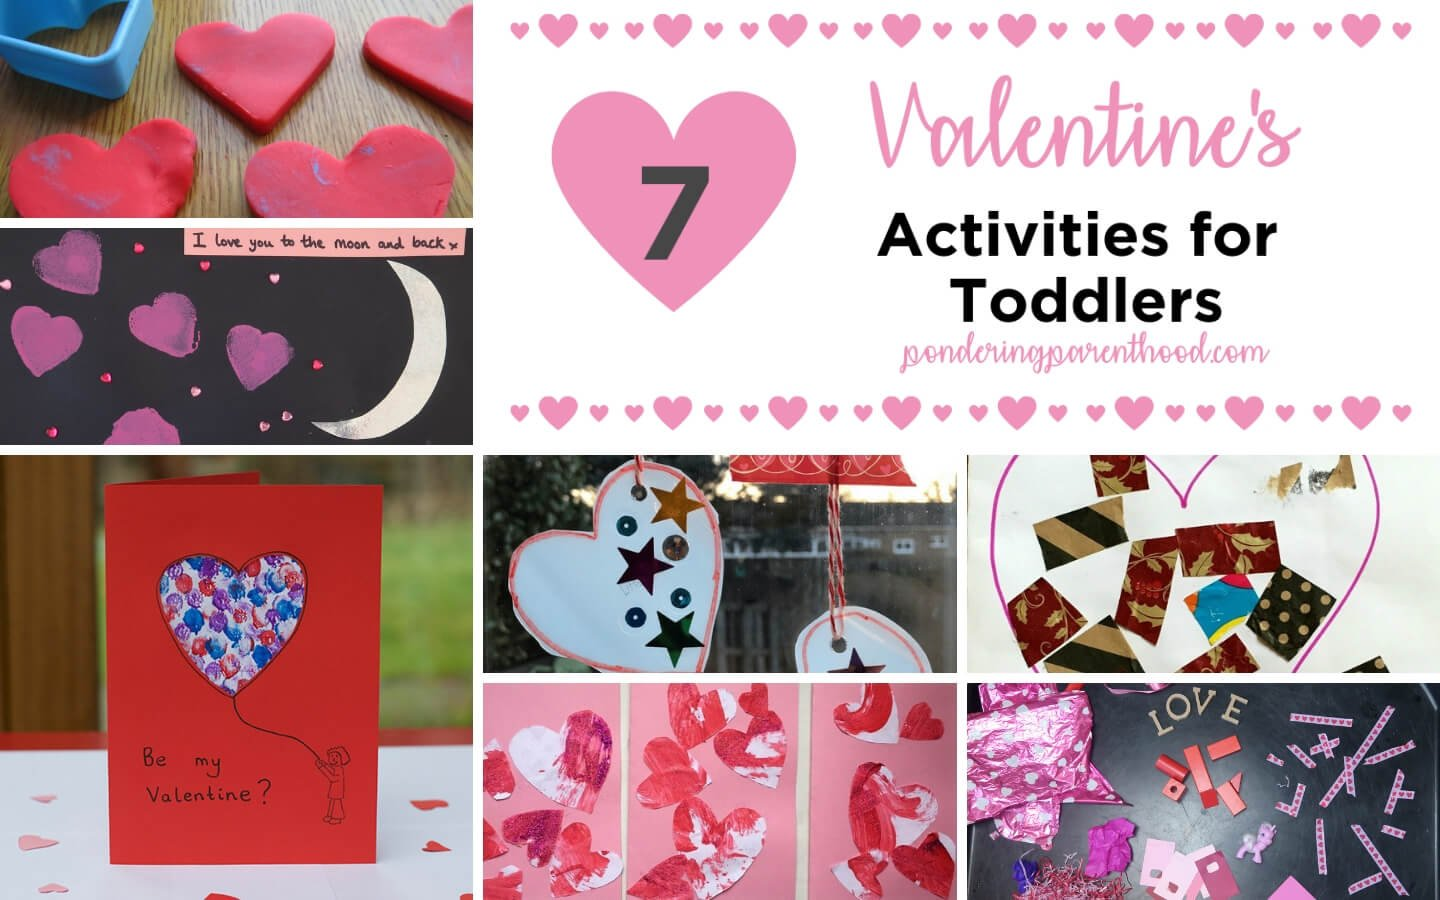 7 Valentine's Activities for Toddlers